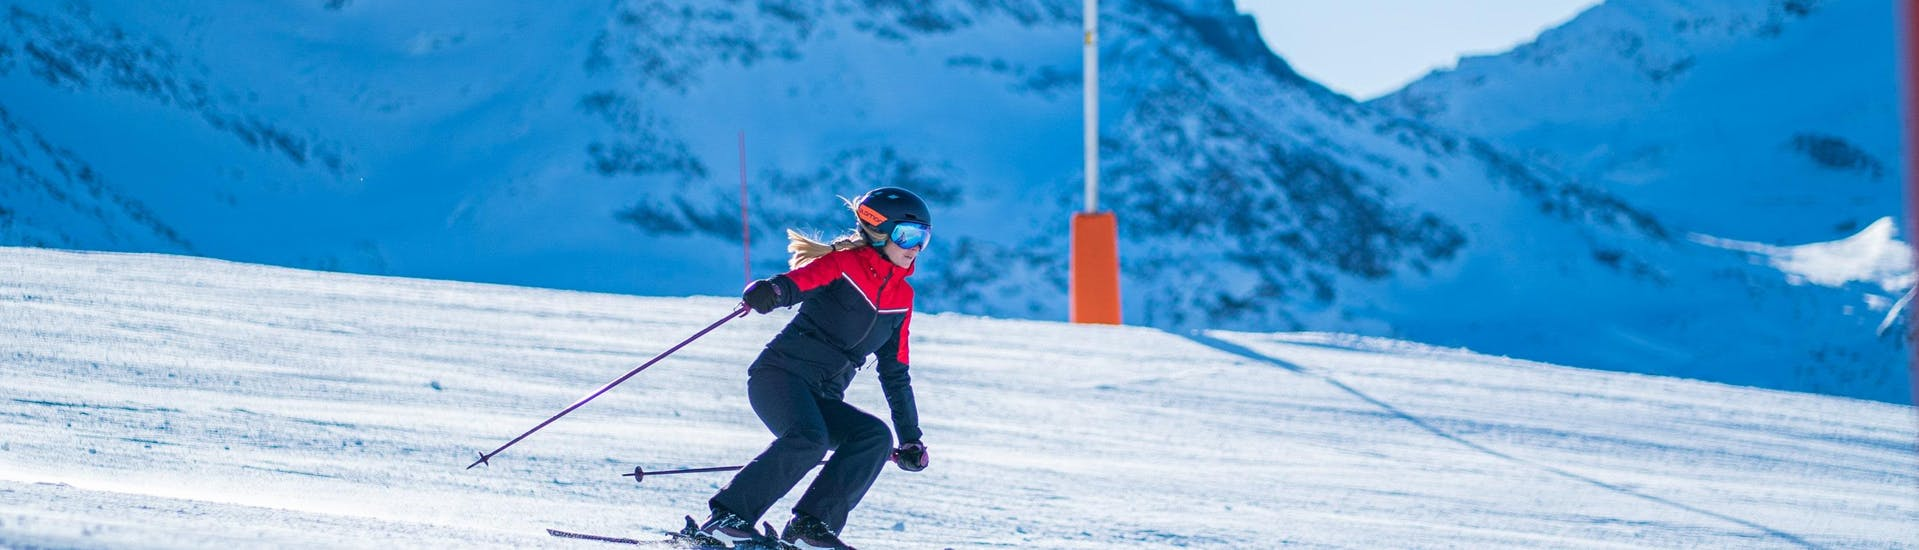 A skier is skiing down a slope with confidence thanks to her Private Ski Lessons for Adults of All Levels with the ski school Evolution 2 Val Thorens.